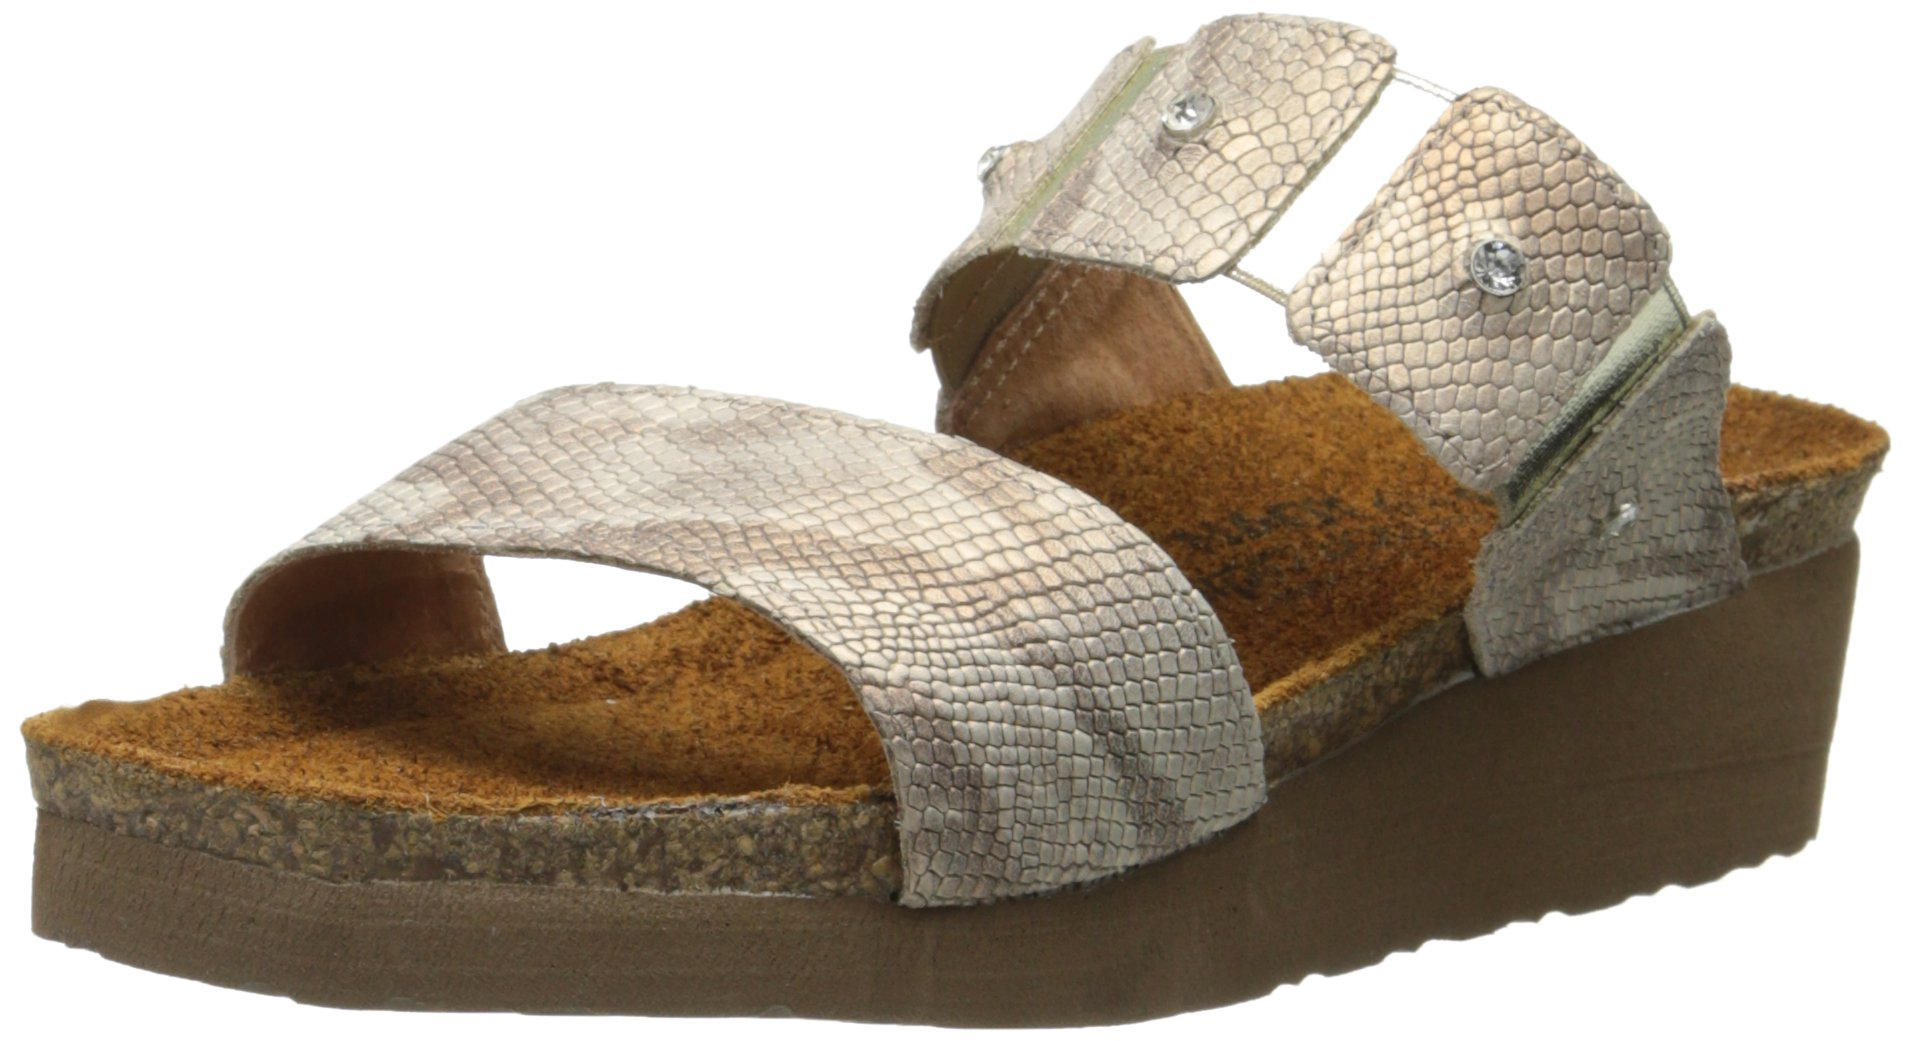 Naot Women's Ashley Sandal, Beige, 38 EU/7 M US